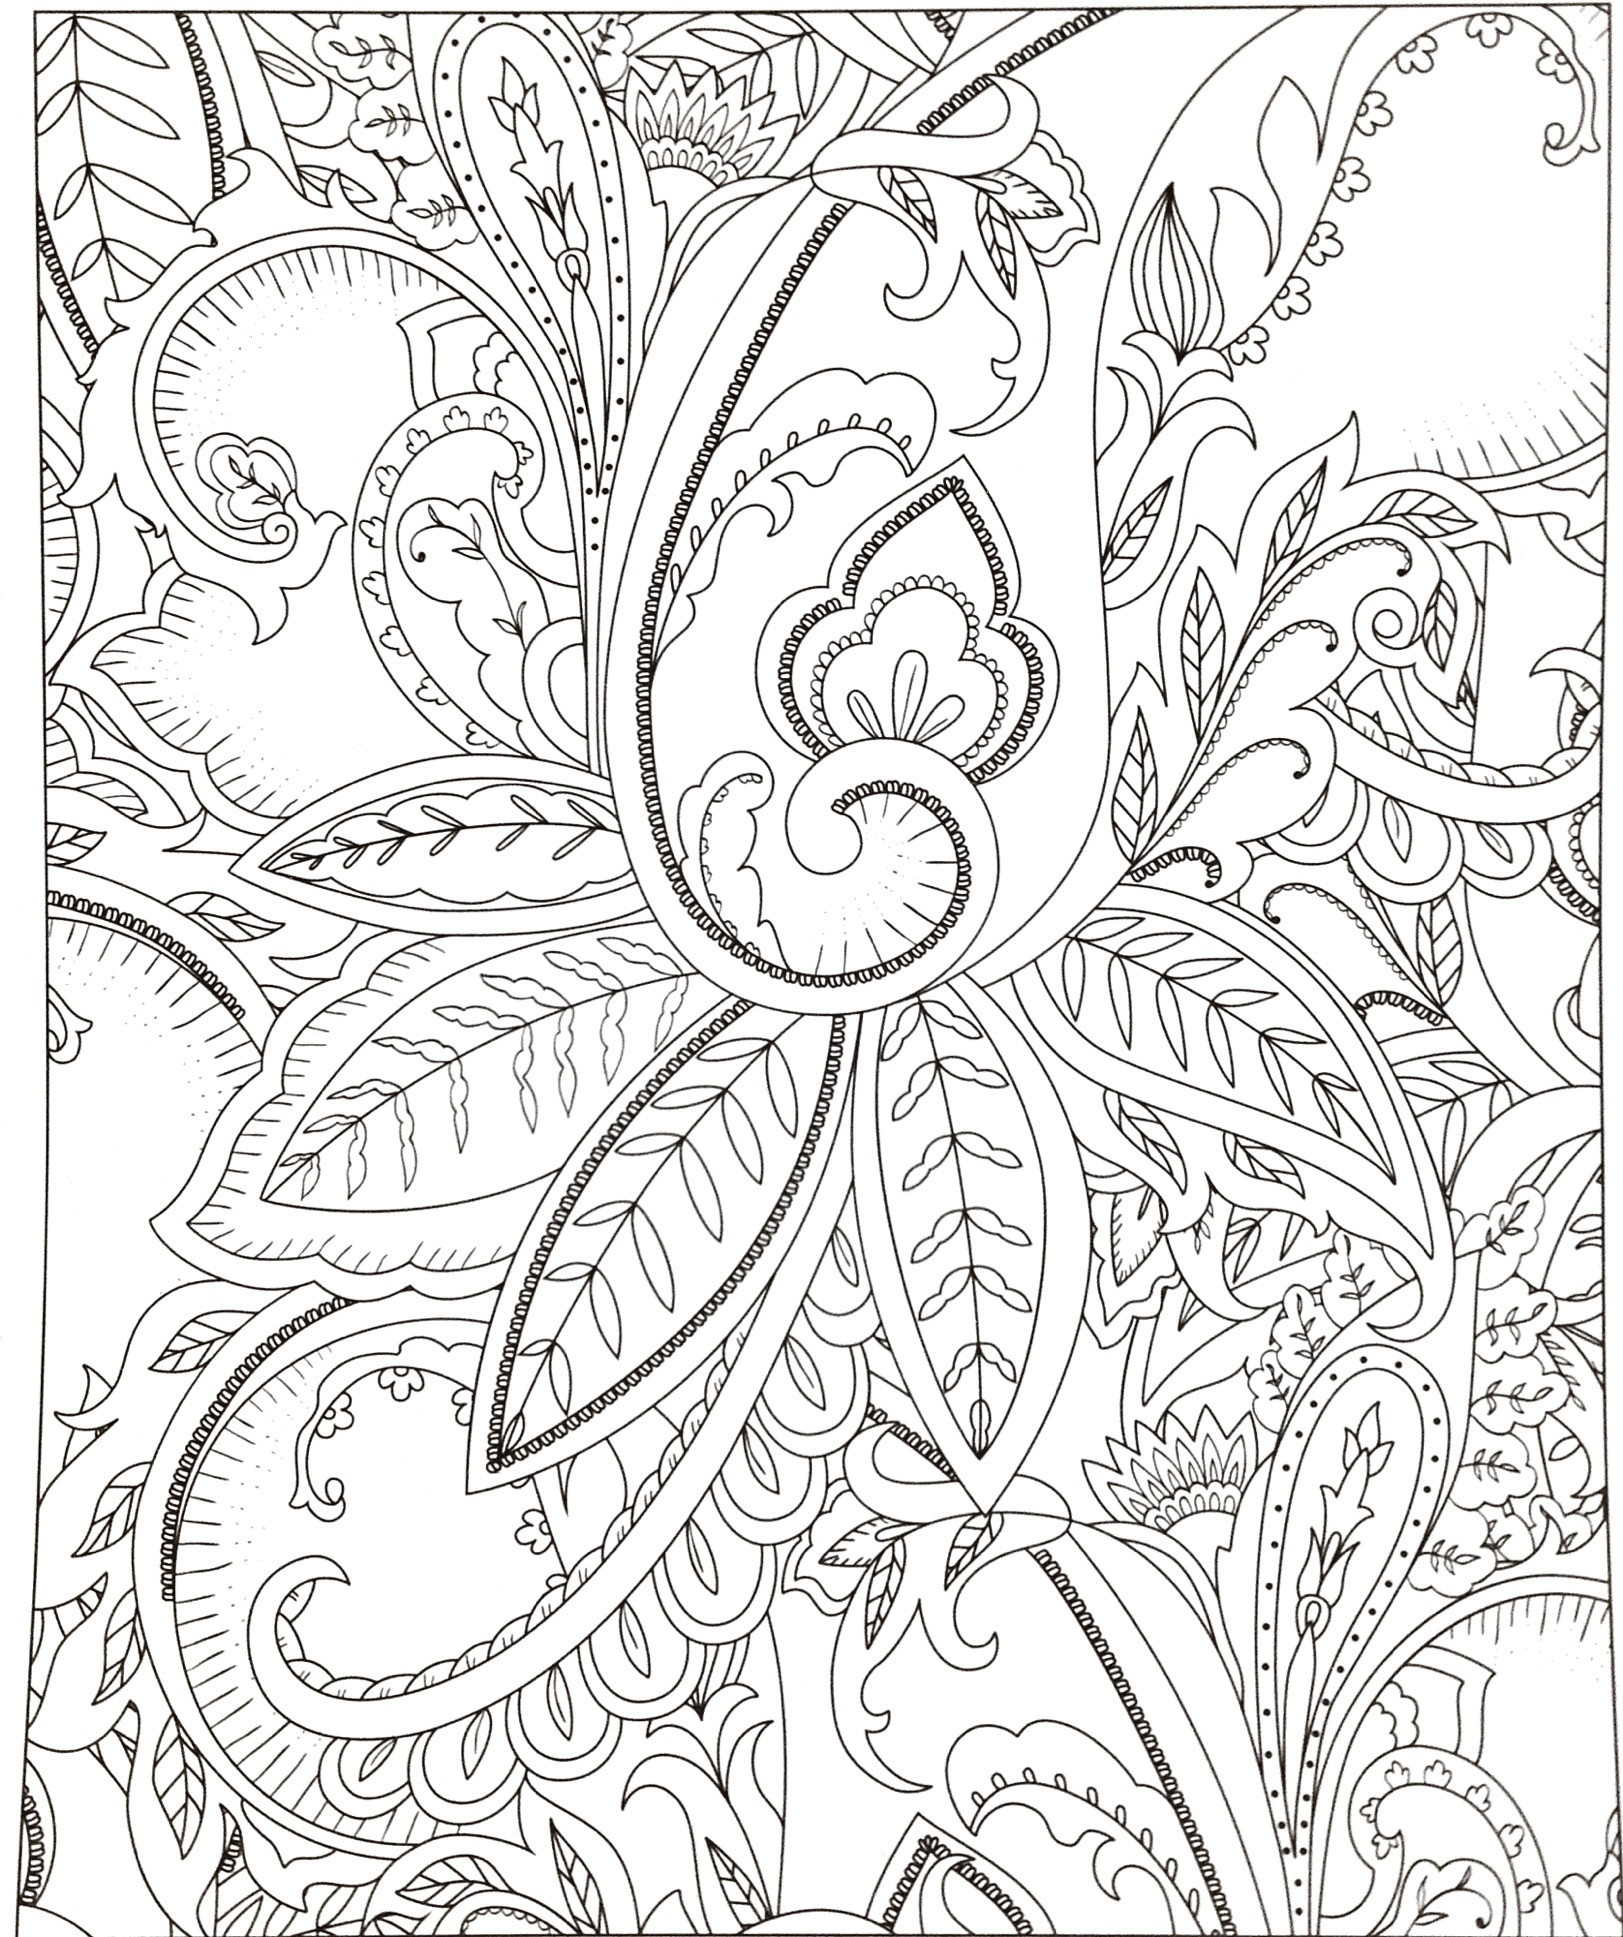 coloring pages that you can color online Collection-Coloring Pages You Can Color line For Free Fresh Inspirational Quotes Coloring Pages Fresh Awesome Od Dog Coloring 9-o